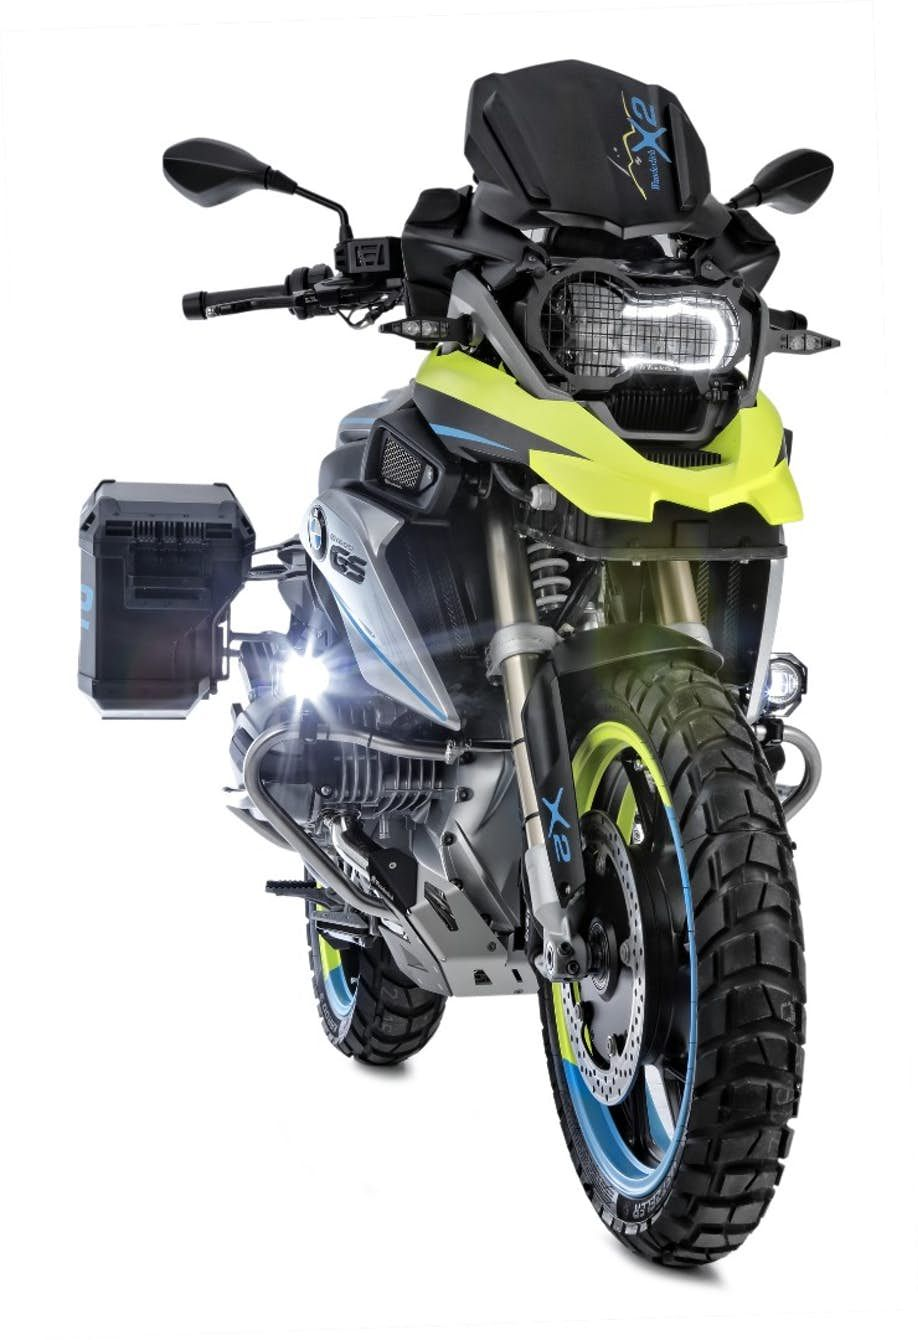 Wunderlich Adds Electric 2wd System And Reverse Gear To A Standard Bmw R1200gs Bmw Adventure Bike Bmw Motorcycles Adventure Bike Motorcycles